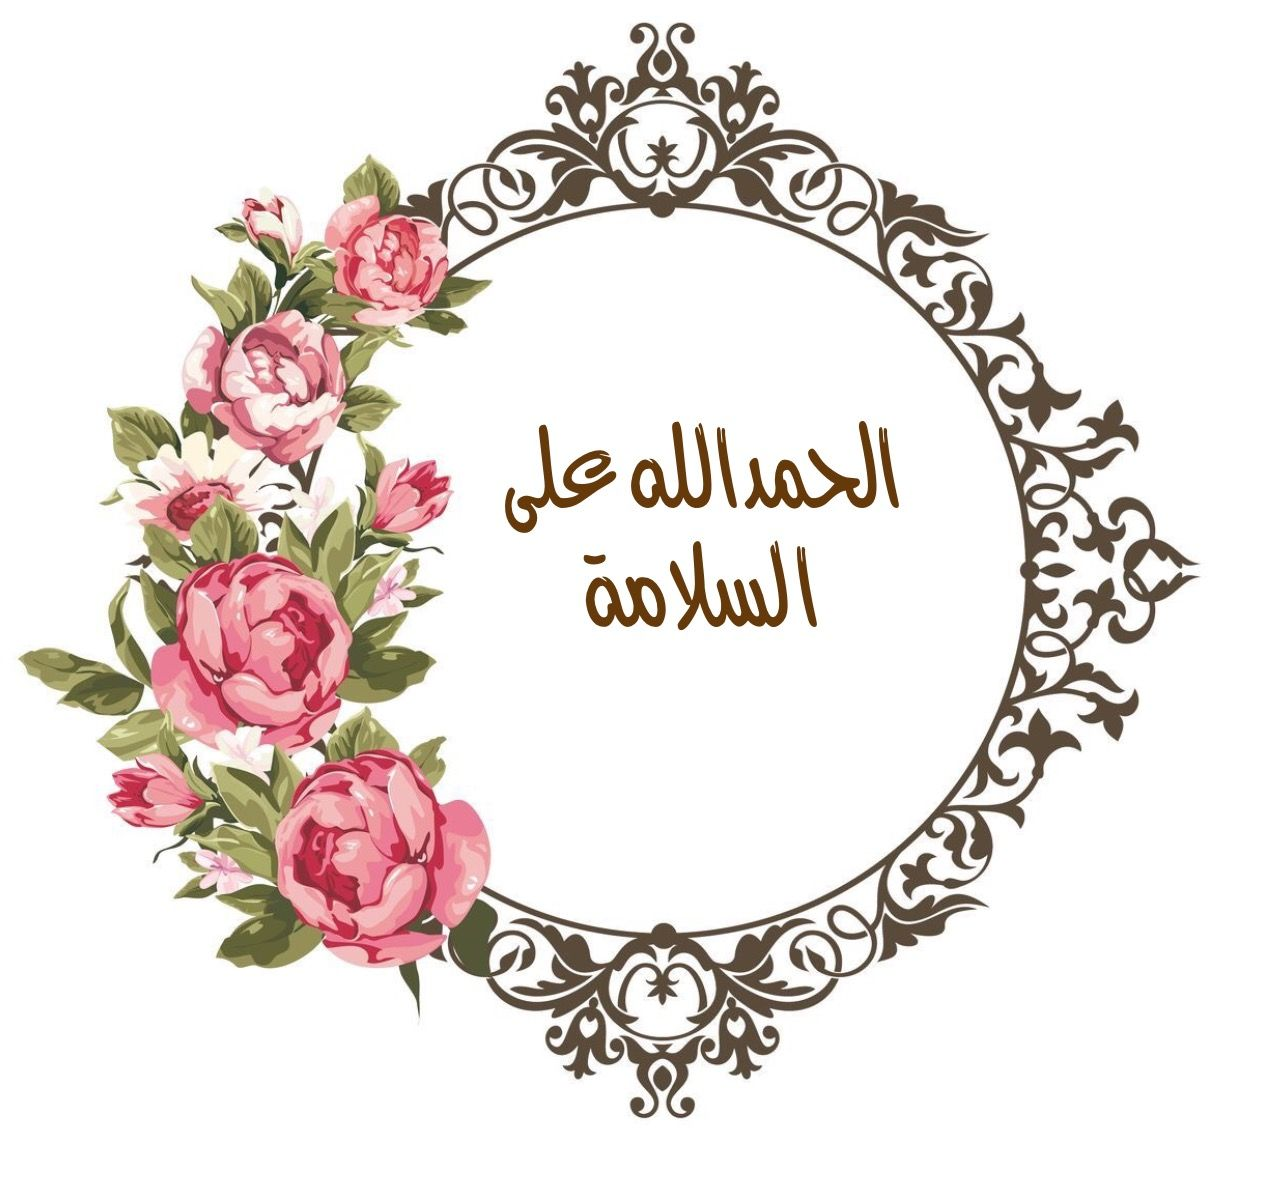 Pin By Mimo Alk3bi On ثيمات سفر Flower Frame Ramadan Kareem Decoration Geometric Invitations